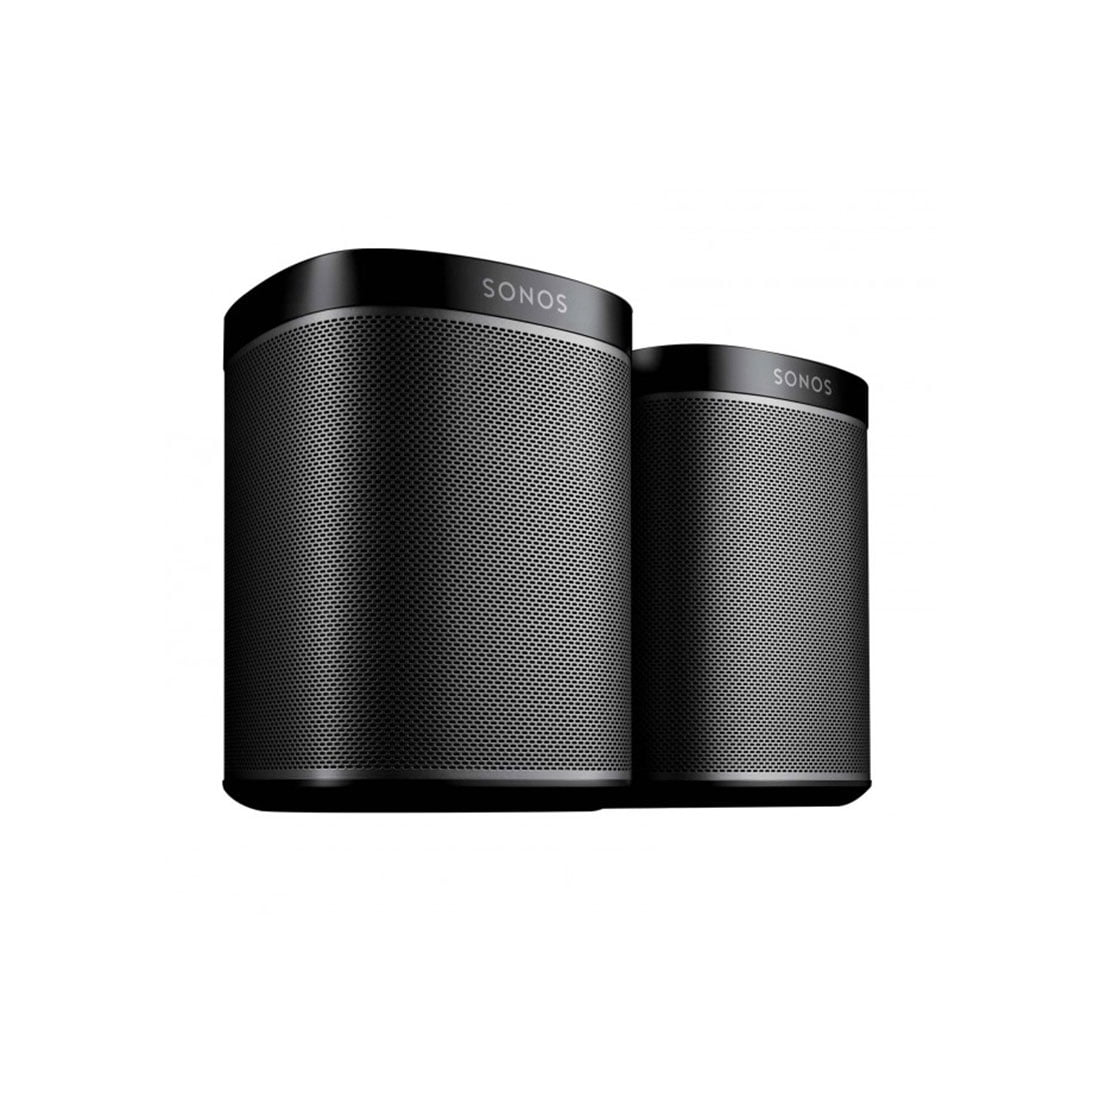 sonos play 1 black compact wireless speaker pair. Black Bedroom Furniture Sets. Home Design Ideas